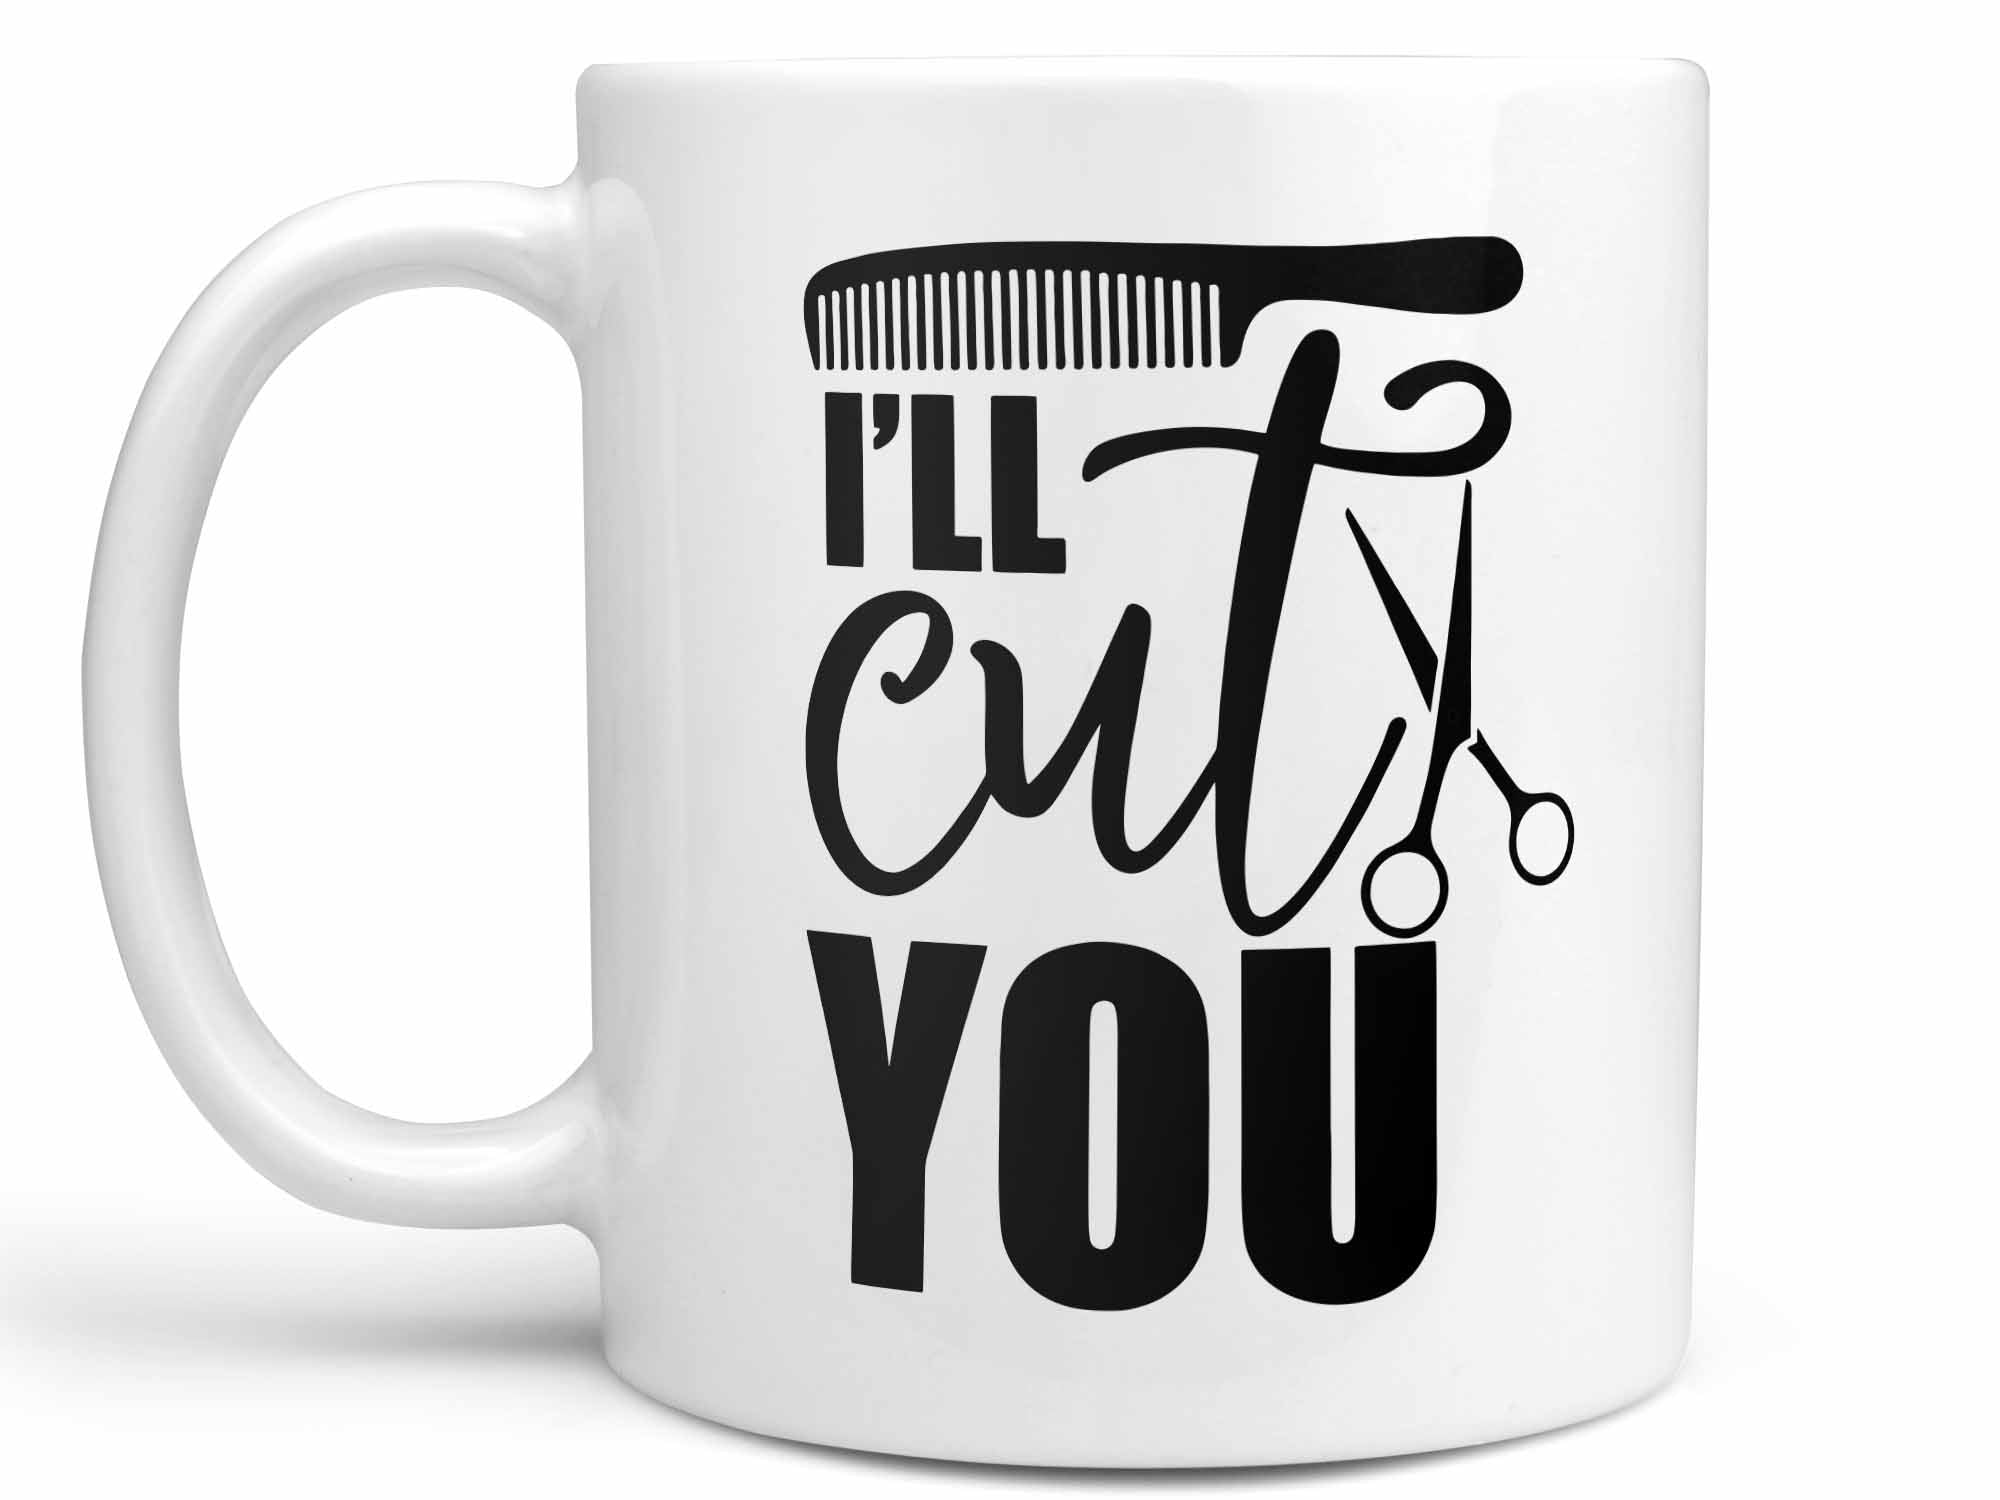 I'll Cut You Coffee Mug,Coffee Mugs Never Lie,Coffee Mug